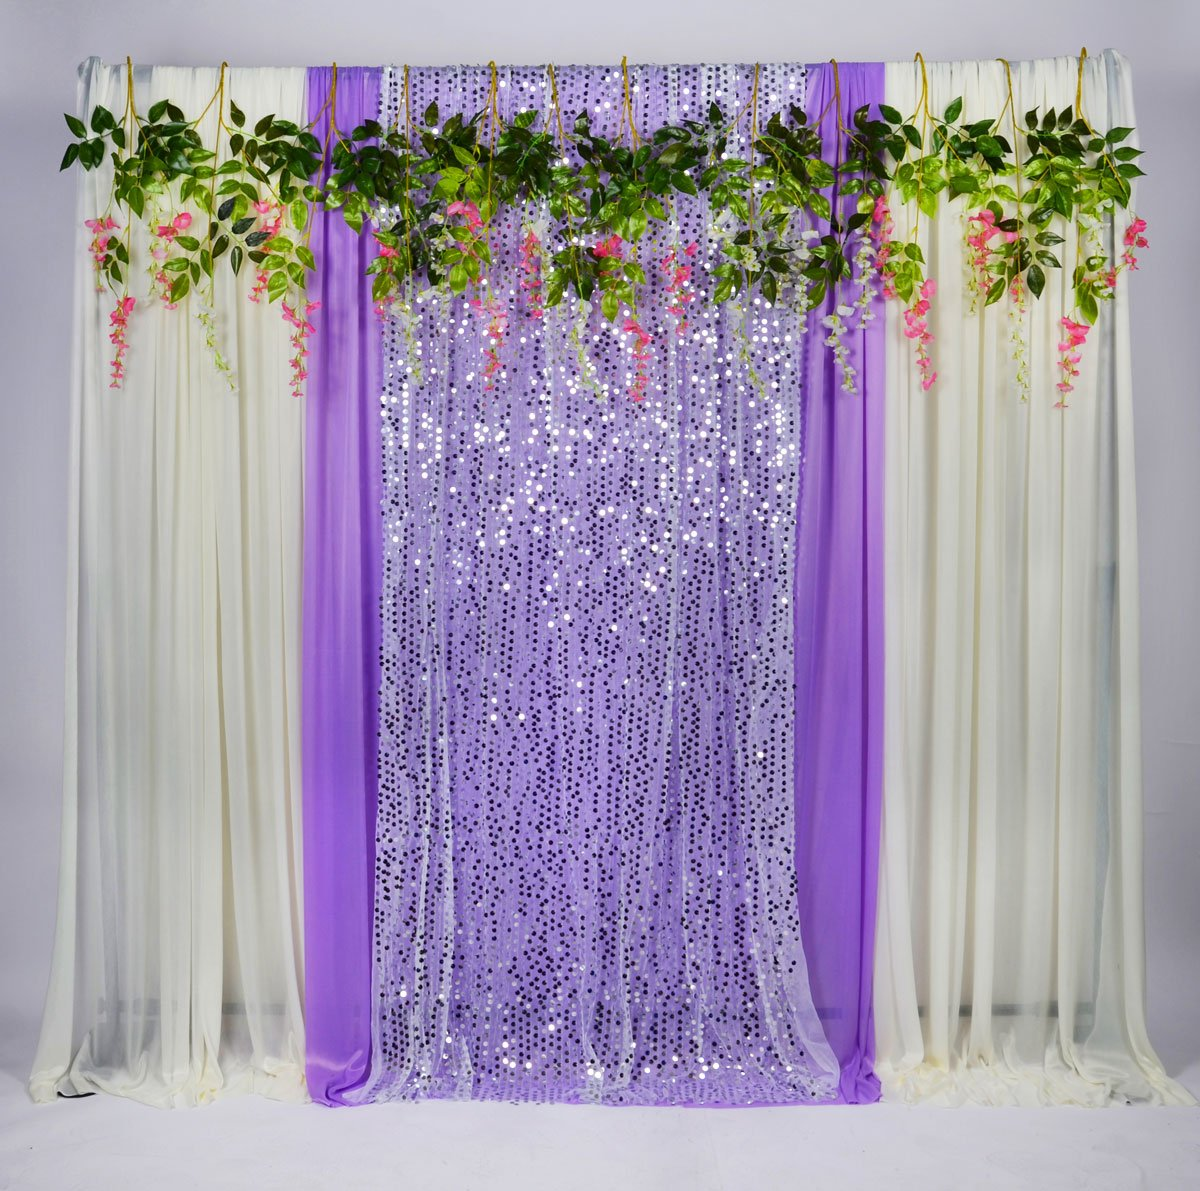 Kate 5x16ft Wedding Decoration White Purple Curtains Background for Party  Stage Shoot 4 Pieces of Ice Silk Cloth Included Glitter Decor